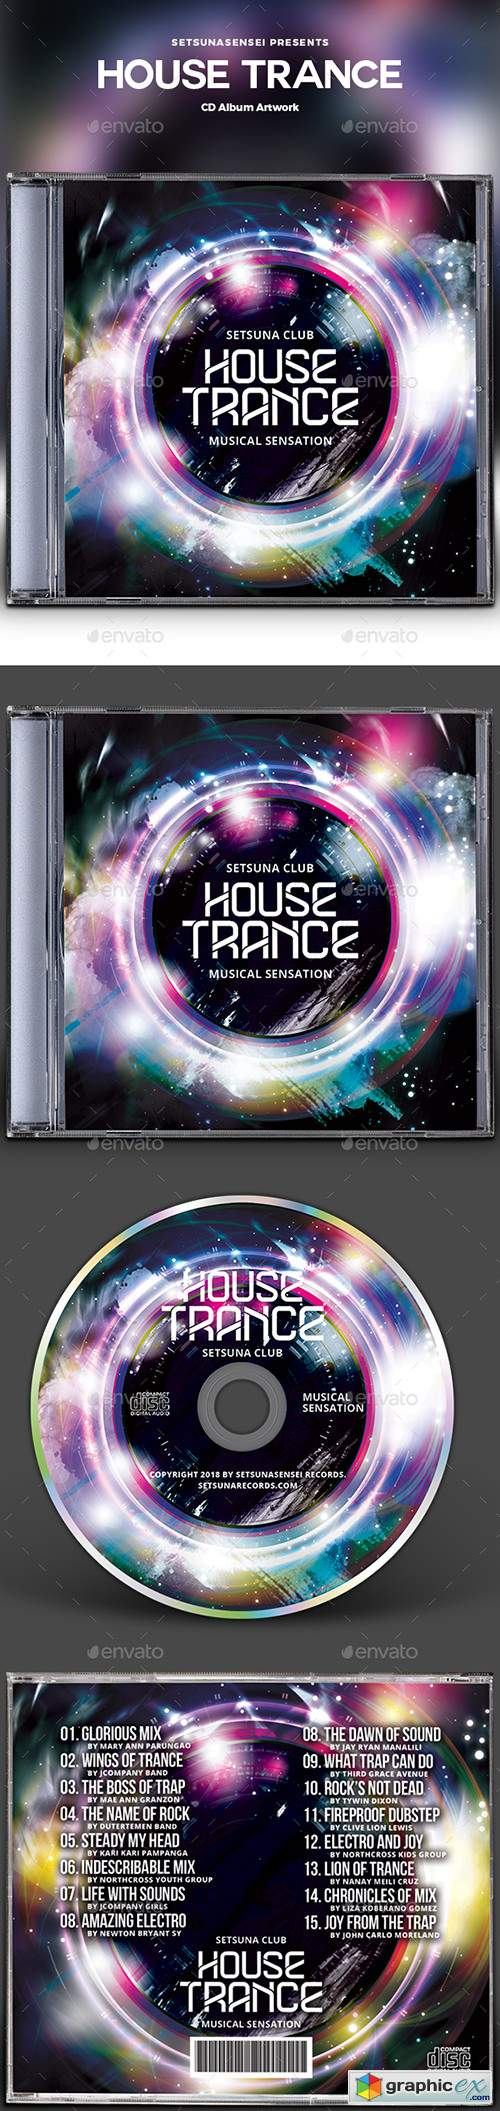 House Trance CD Album Artwork